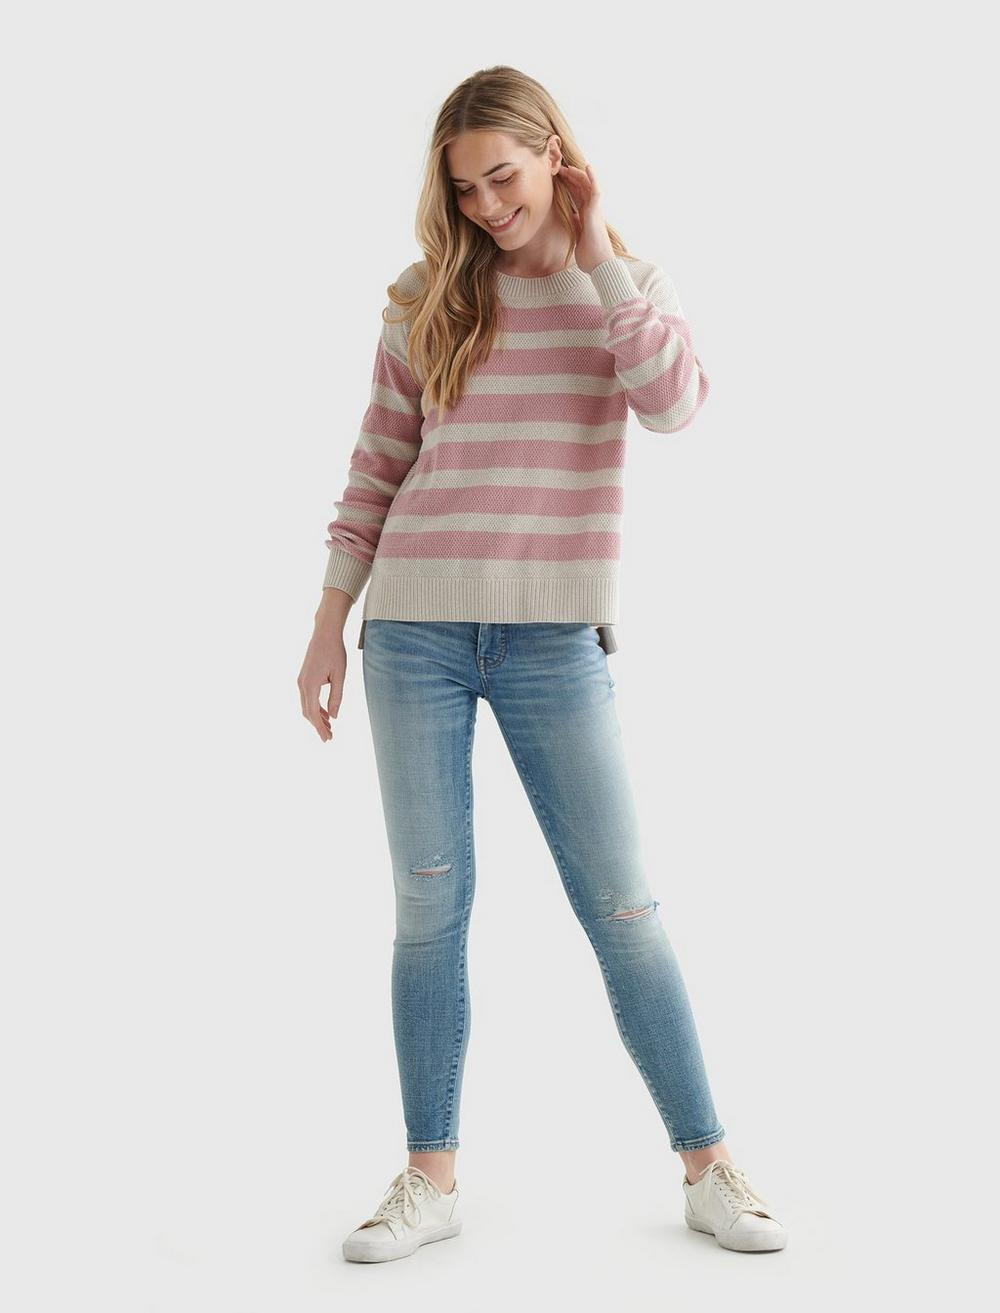 TEXTURED KNIT SWEATER, image 2